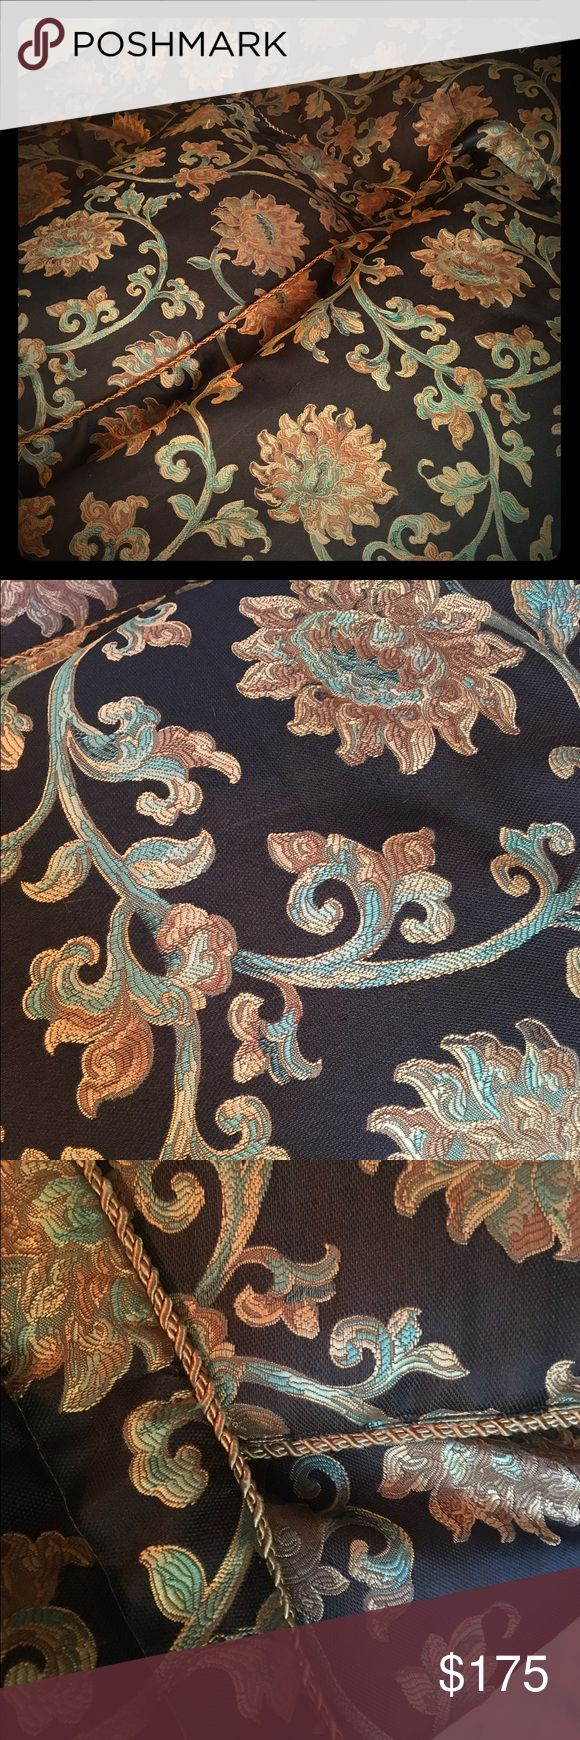 Gorgeous King size comforter set Includes 2 pillow shams and bed skirt.  Beautiful designs with gold, turquoise and brown design on black background.  Barely used.  This was not a cheap set bought at a discount store.  I paid over $800...price is firm. Other